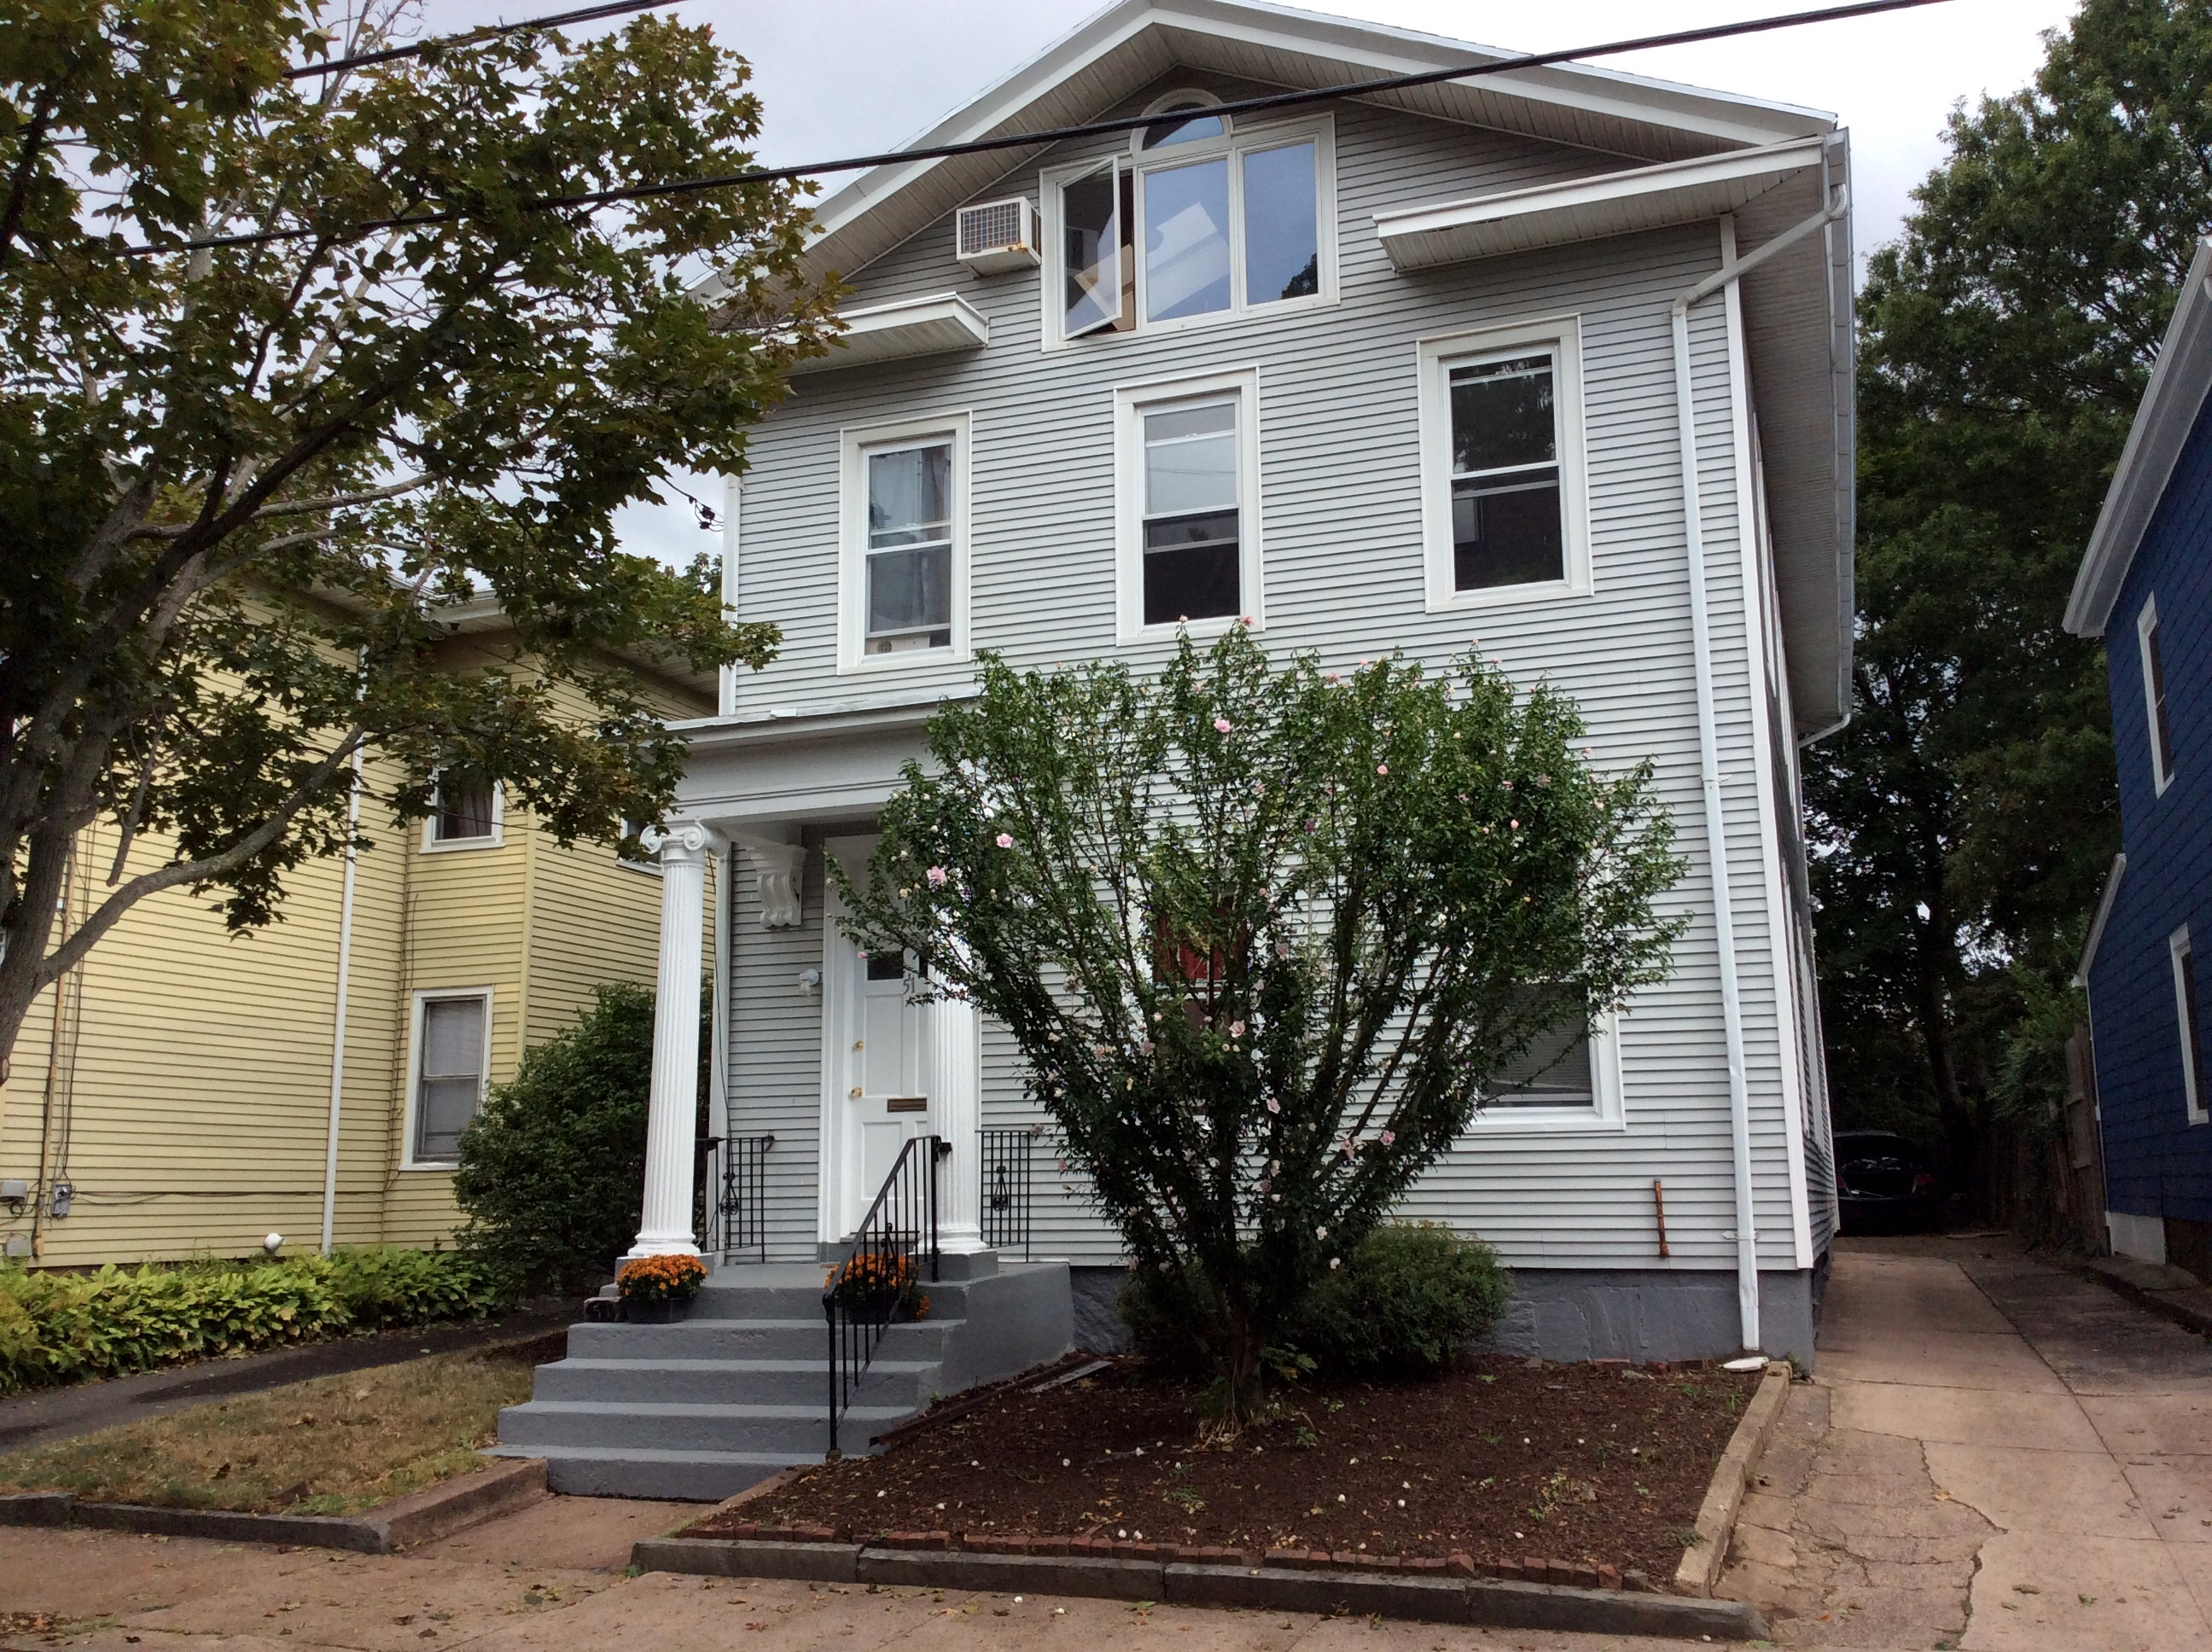 Casa Multifamiliar por un Venta en 51 Clark Street New Haven, Connecticut, 06511 Estados Unidos